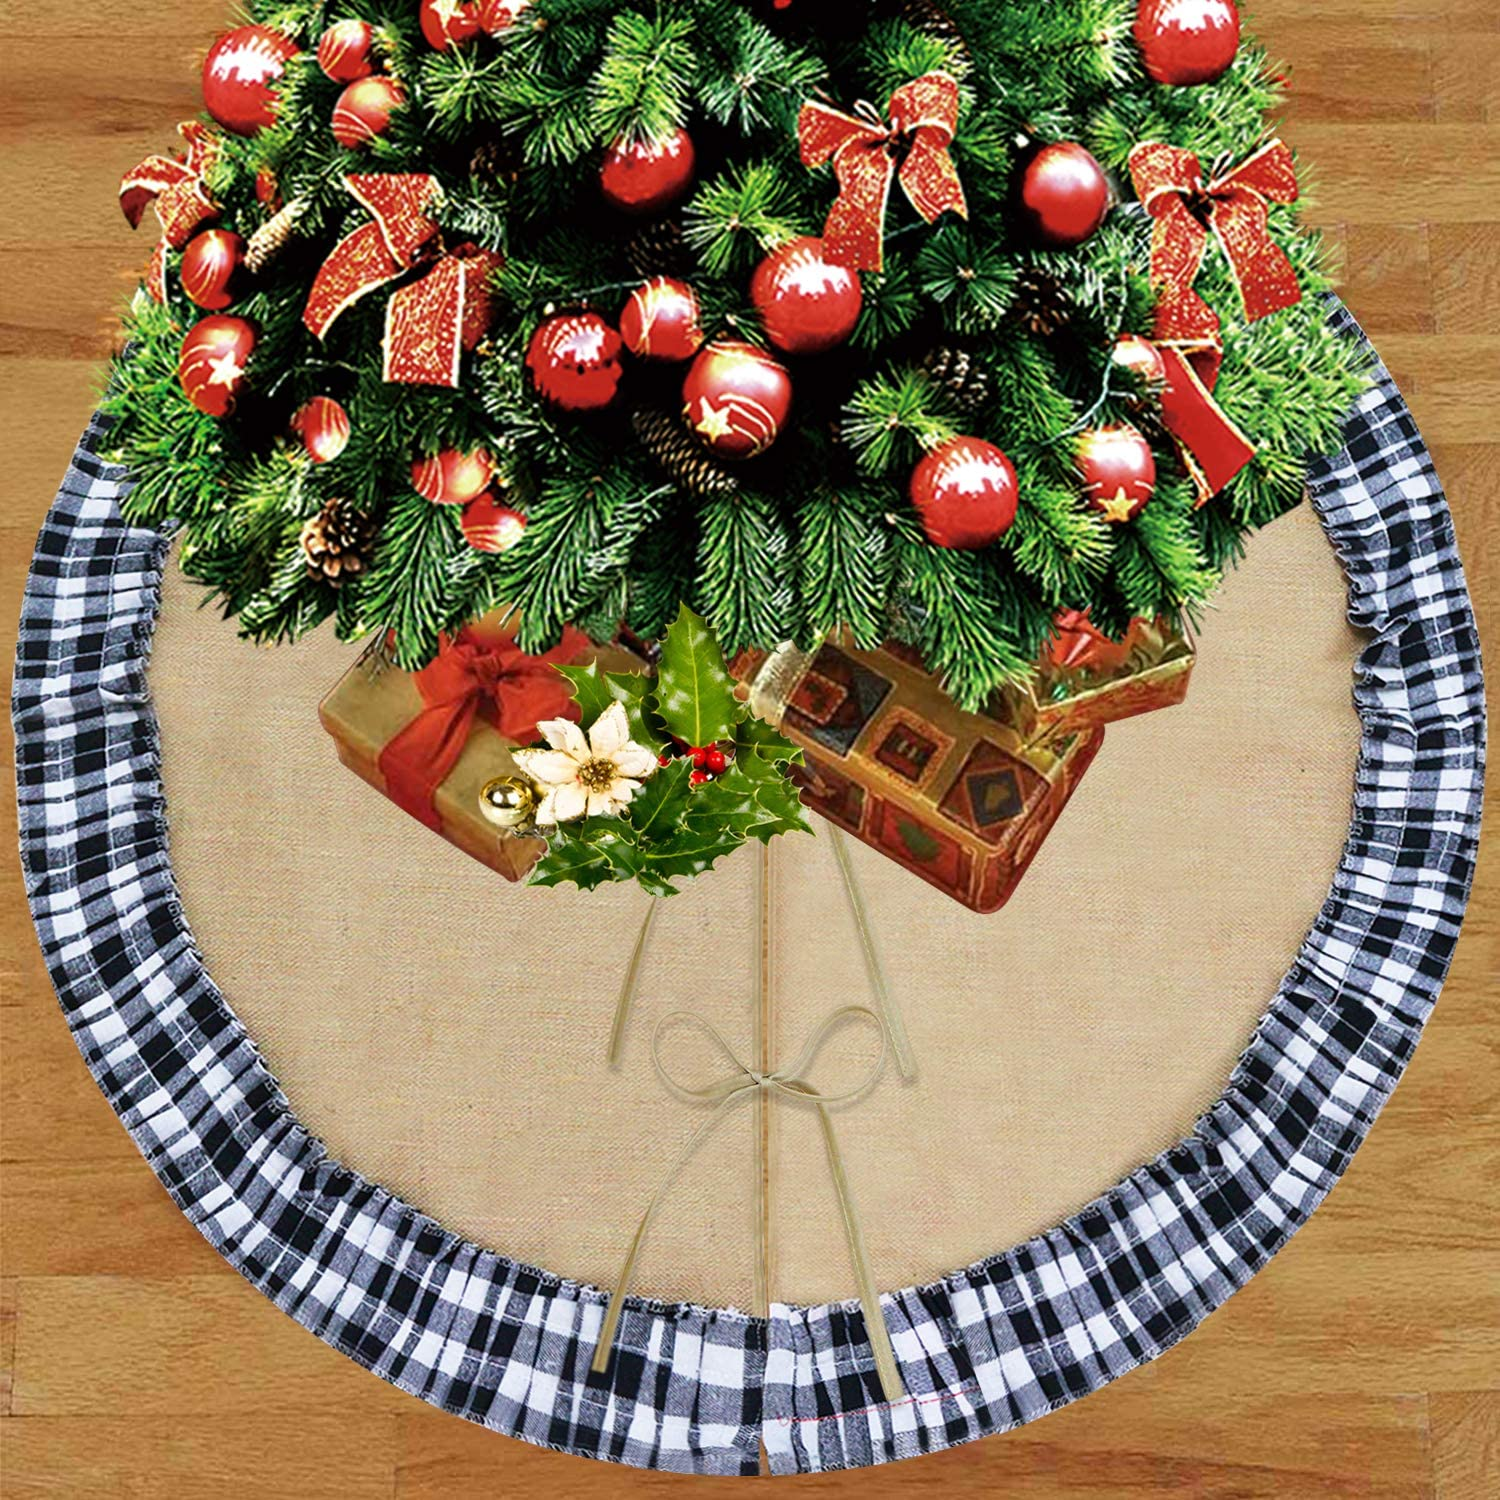 Partyprops Christmas Tree Skirt, Large 48 Inch Burlap Tree Skirt with Black White Checkered Ruffle Decors, Buffalo Plaid Tree Skirt for Christmas Decorations, Xmas Holiday Decorations Indoor Outdoor